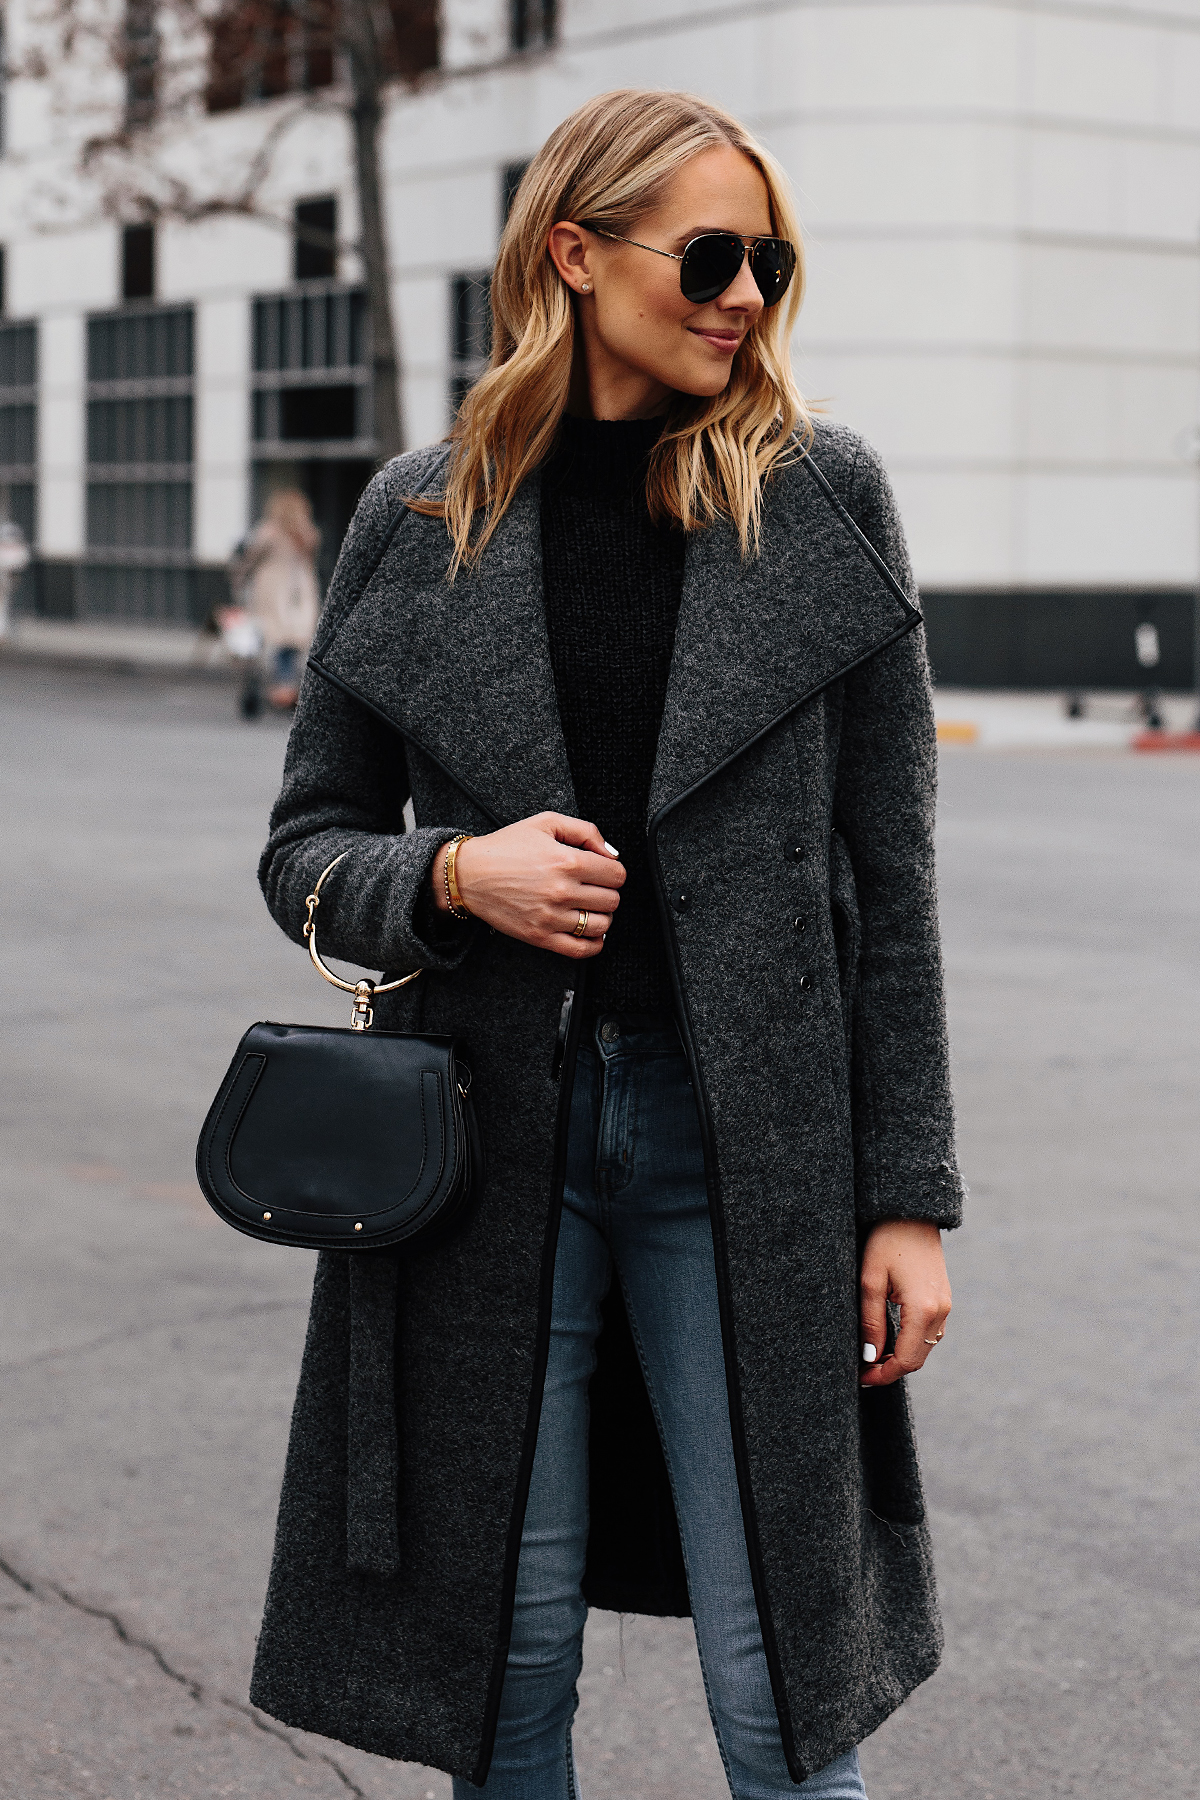 Blonde Woman Wearing Wearing Grey Wool Wrap Coat Black Sweater Denim Skinny Jeans Outfit Fashion Jackson San Diego Fashion Blogger Street Style